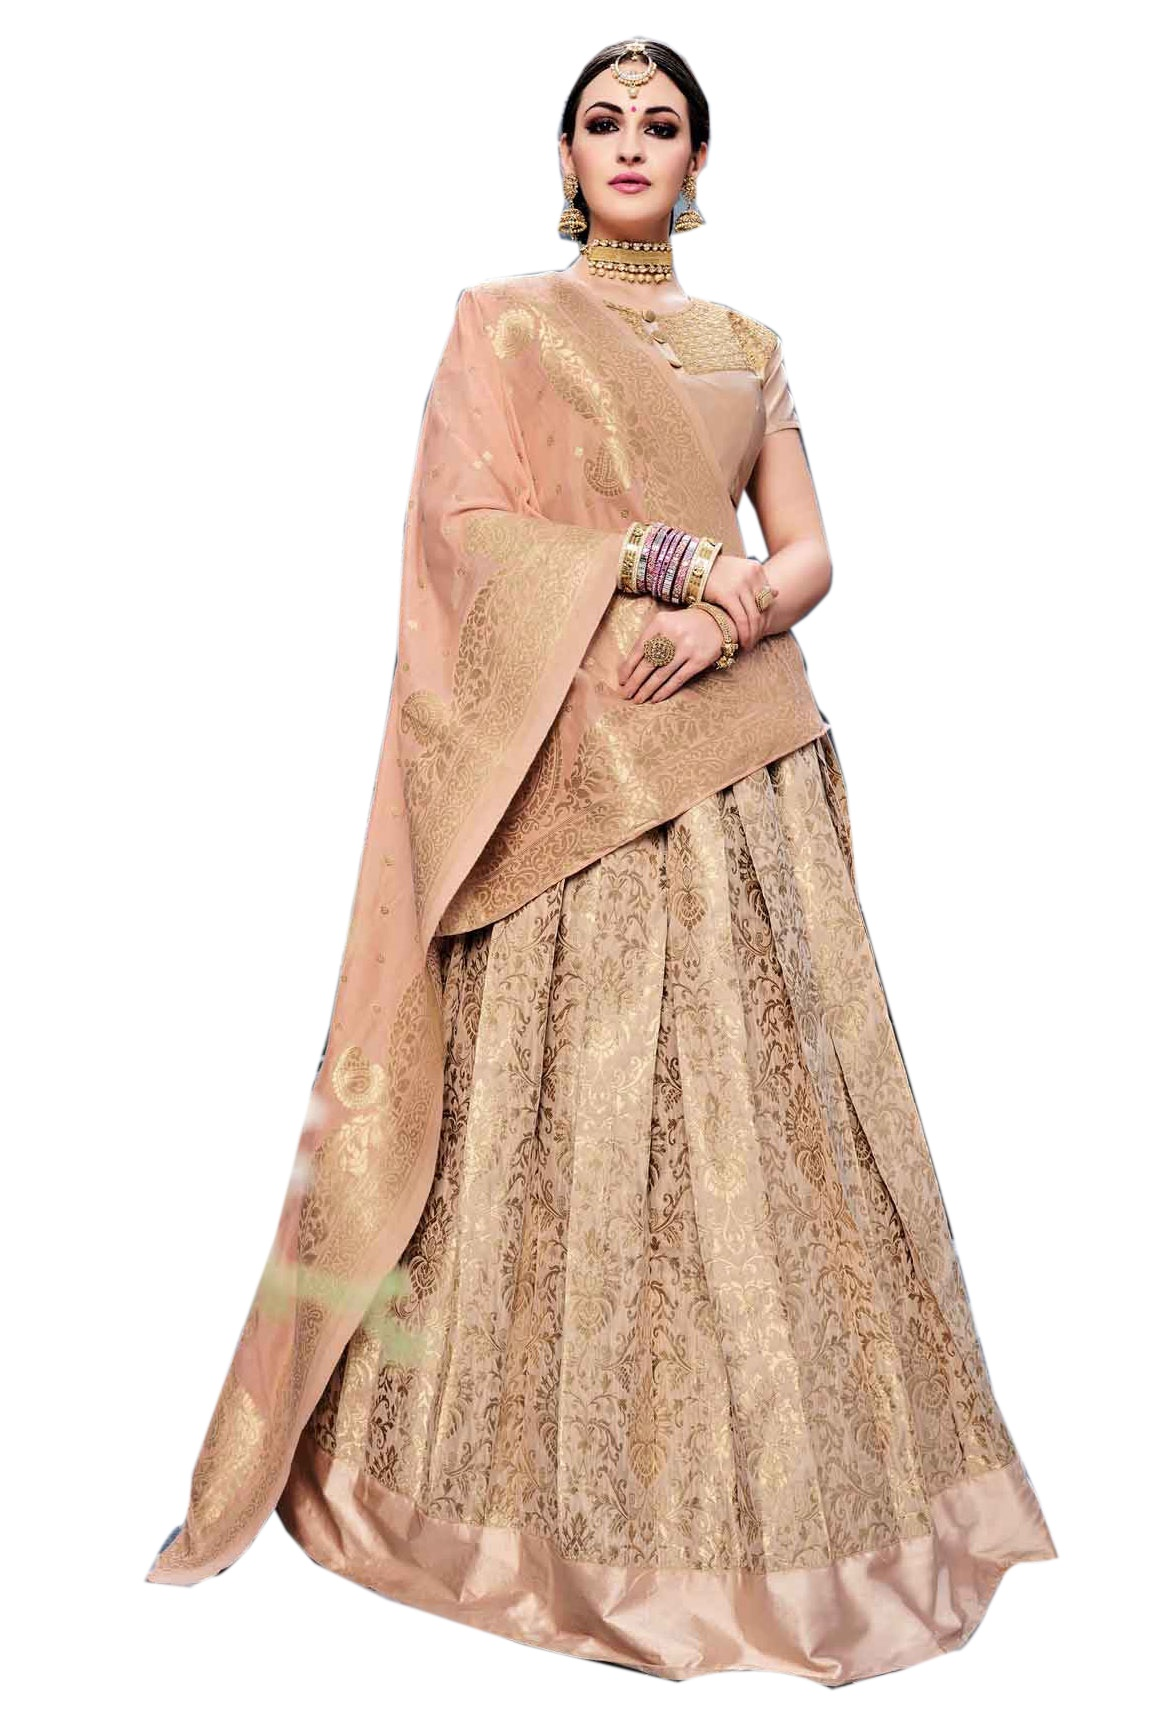 4ec874cea1232 It s my sister s wedding next month. What are some stylish dress ...